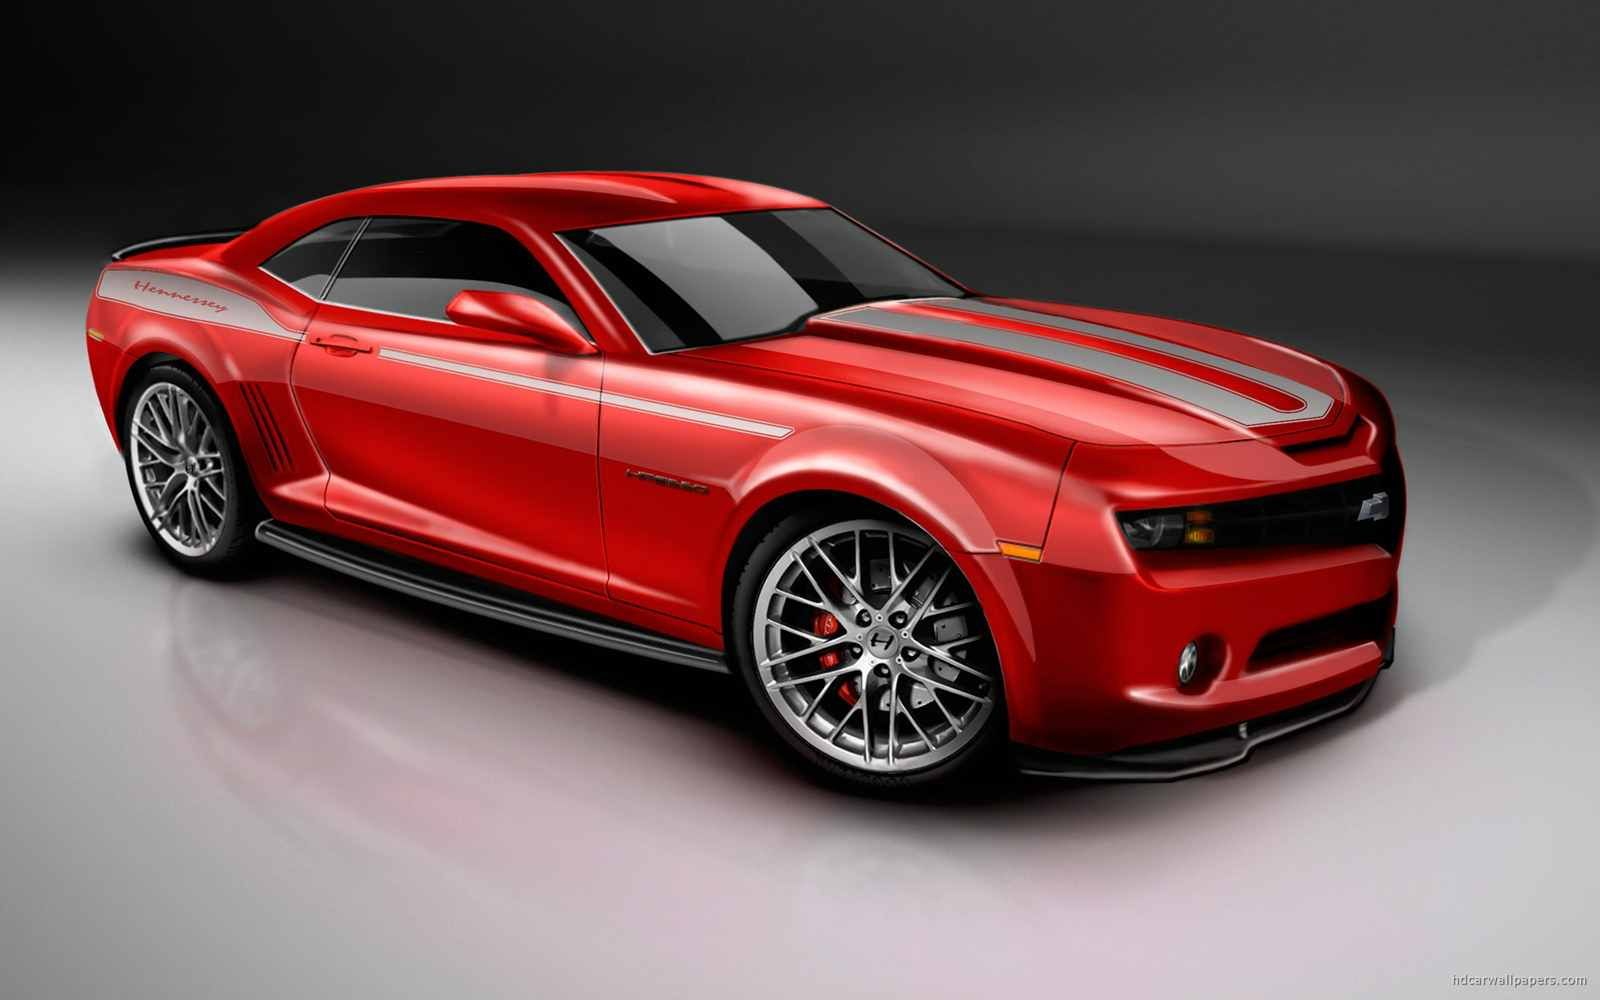 2010 camaro red car wallpaper carros chevrolet chevrolet aveo chevrolet captiva